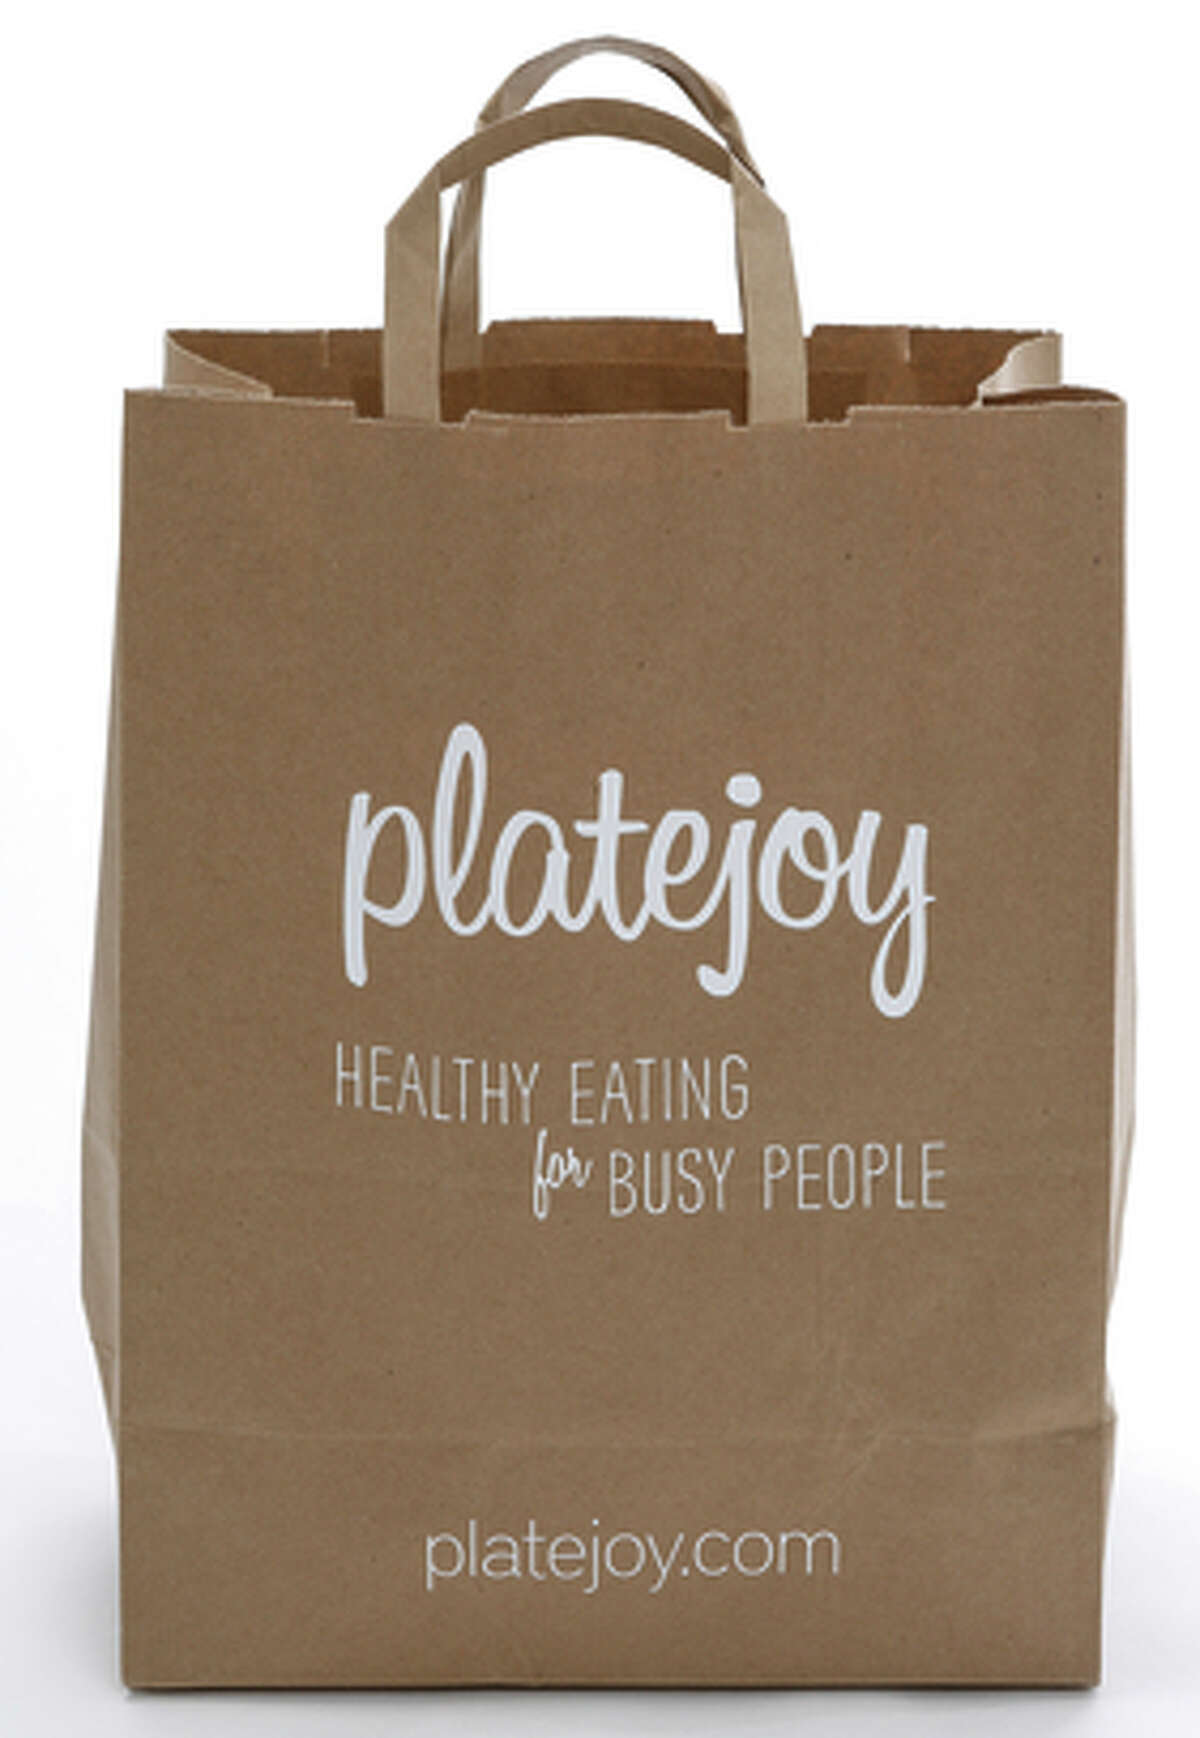 A meal kit from Platejoy.